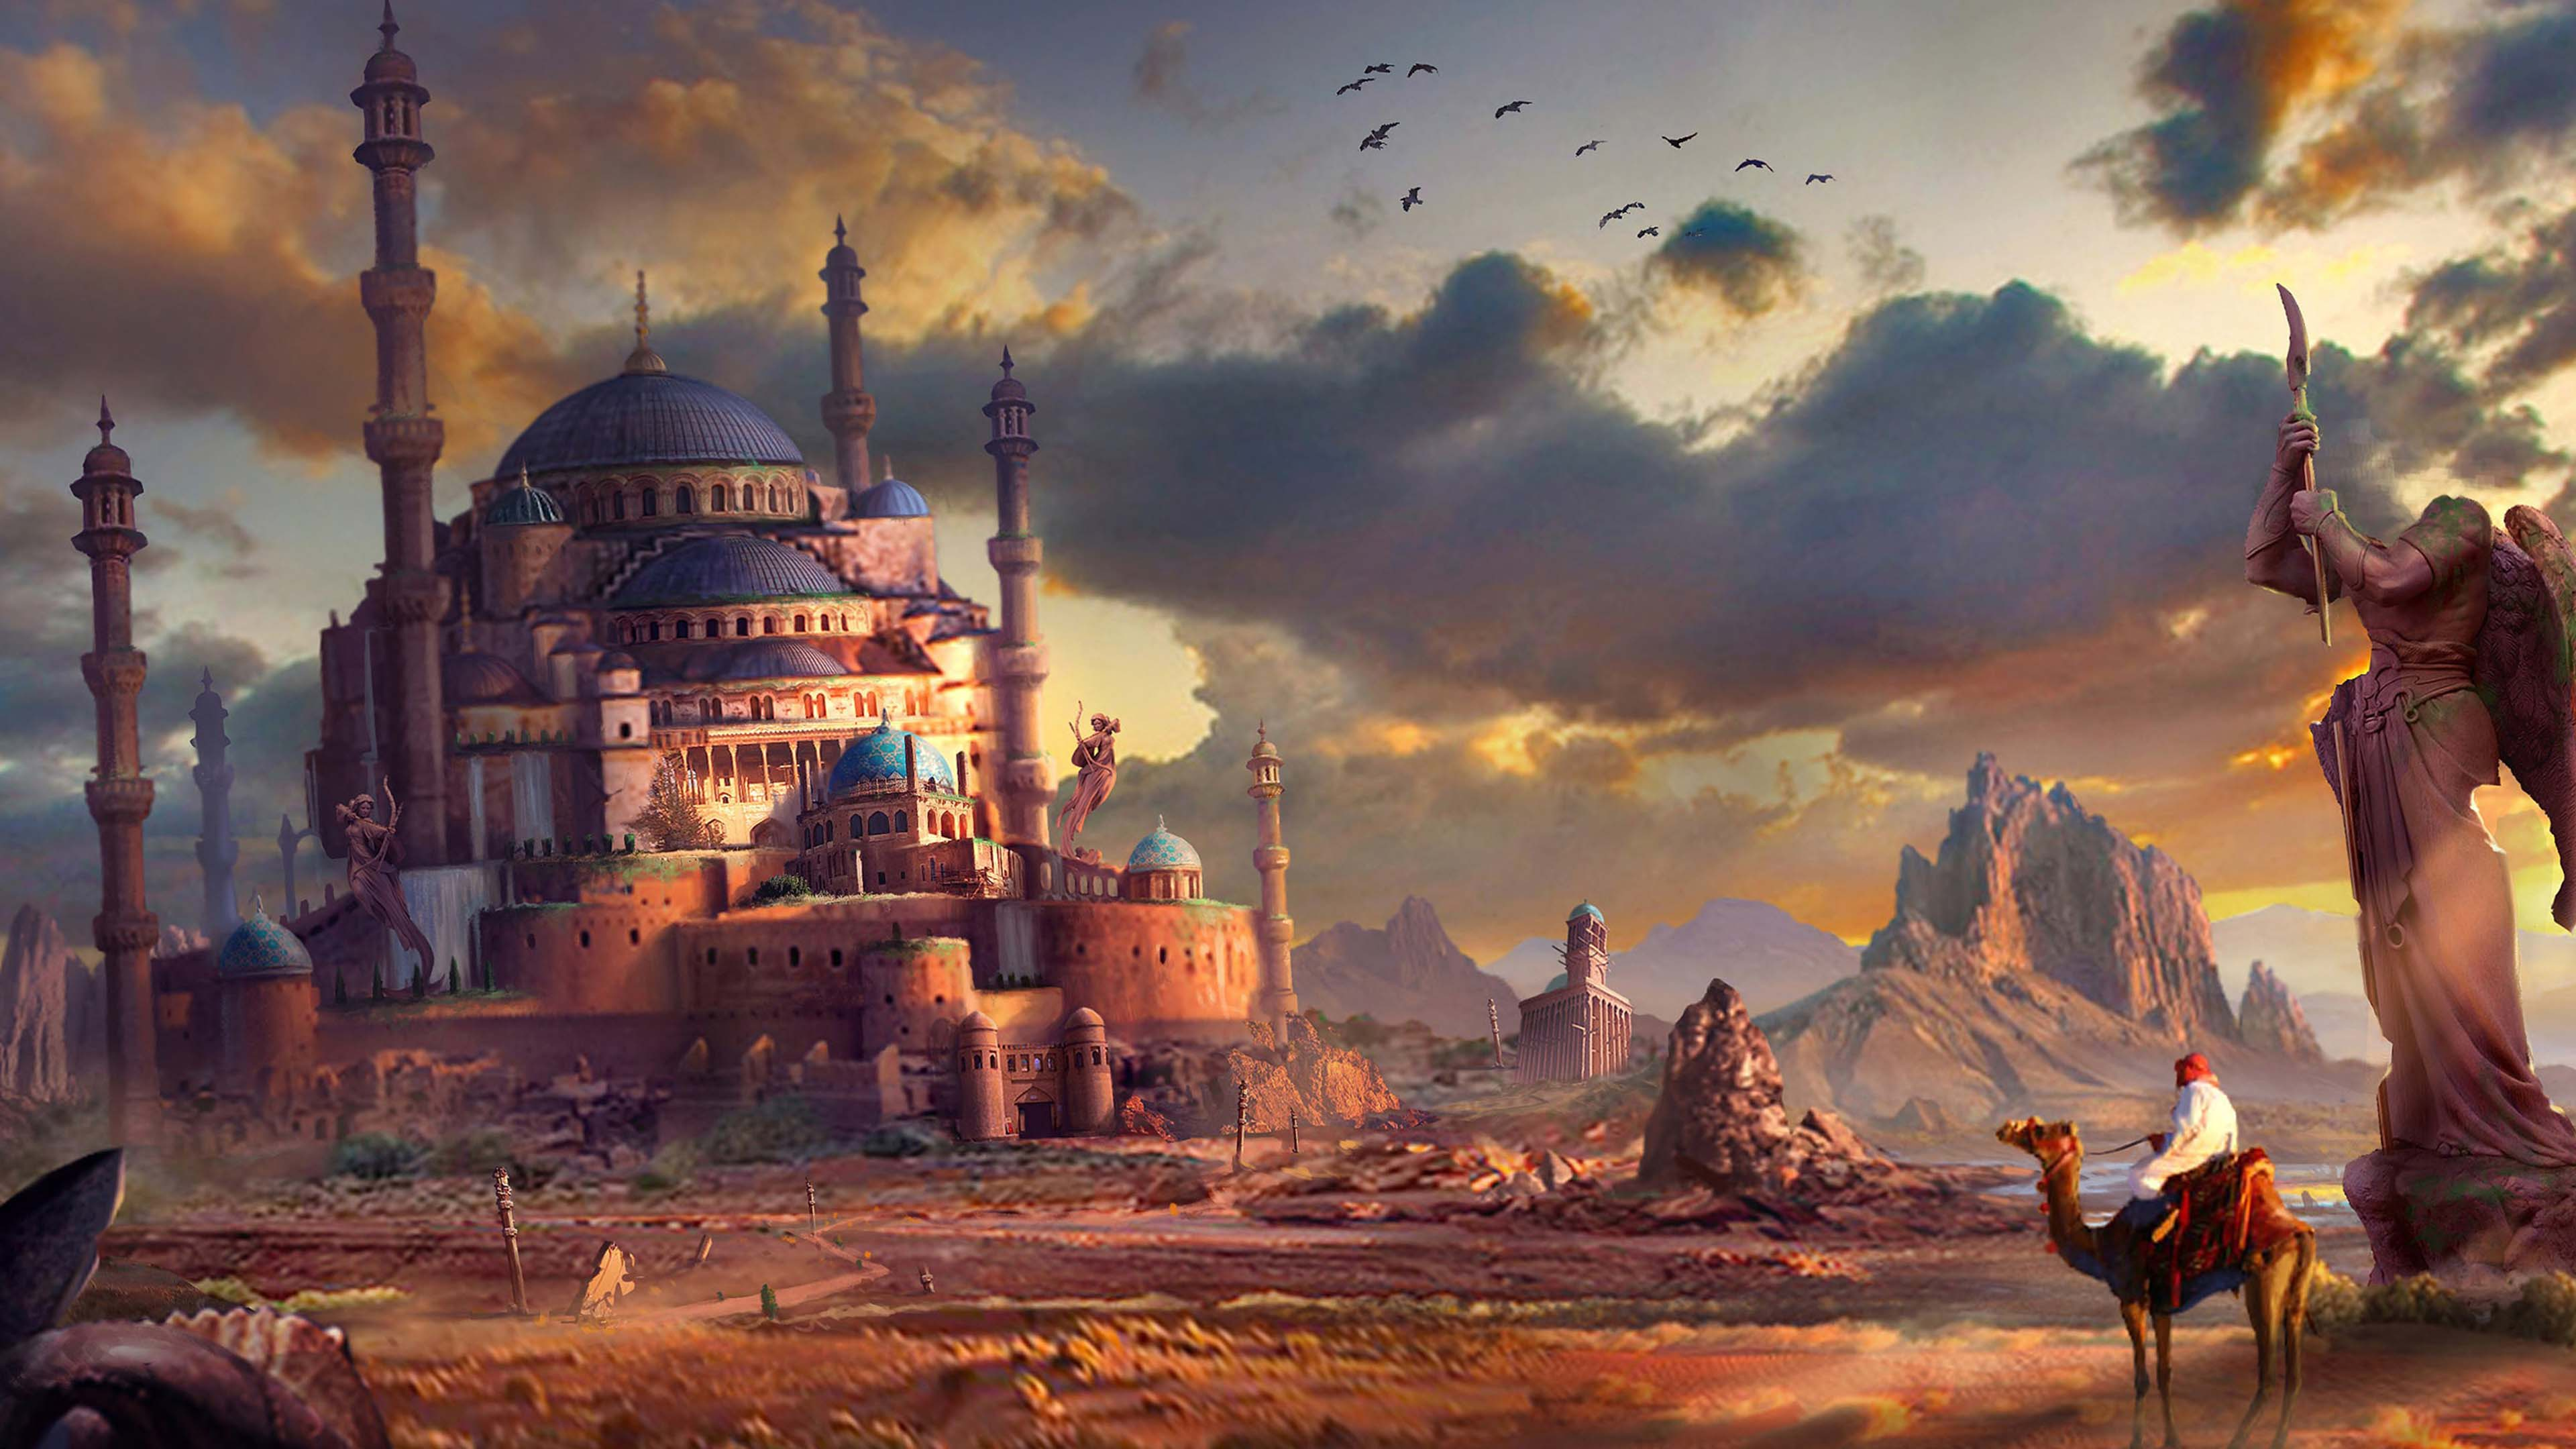 Arabic Marvelous Painting Picture Desktop Free Download